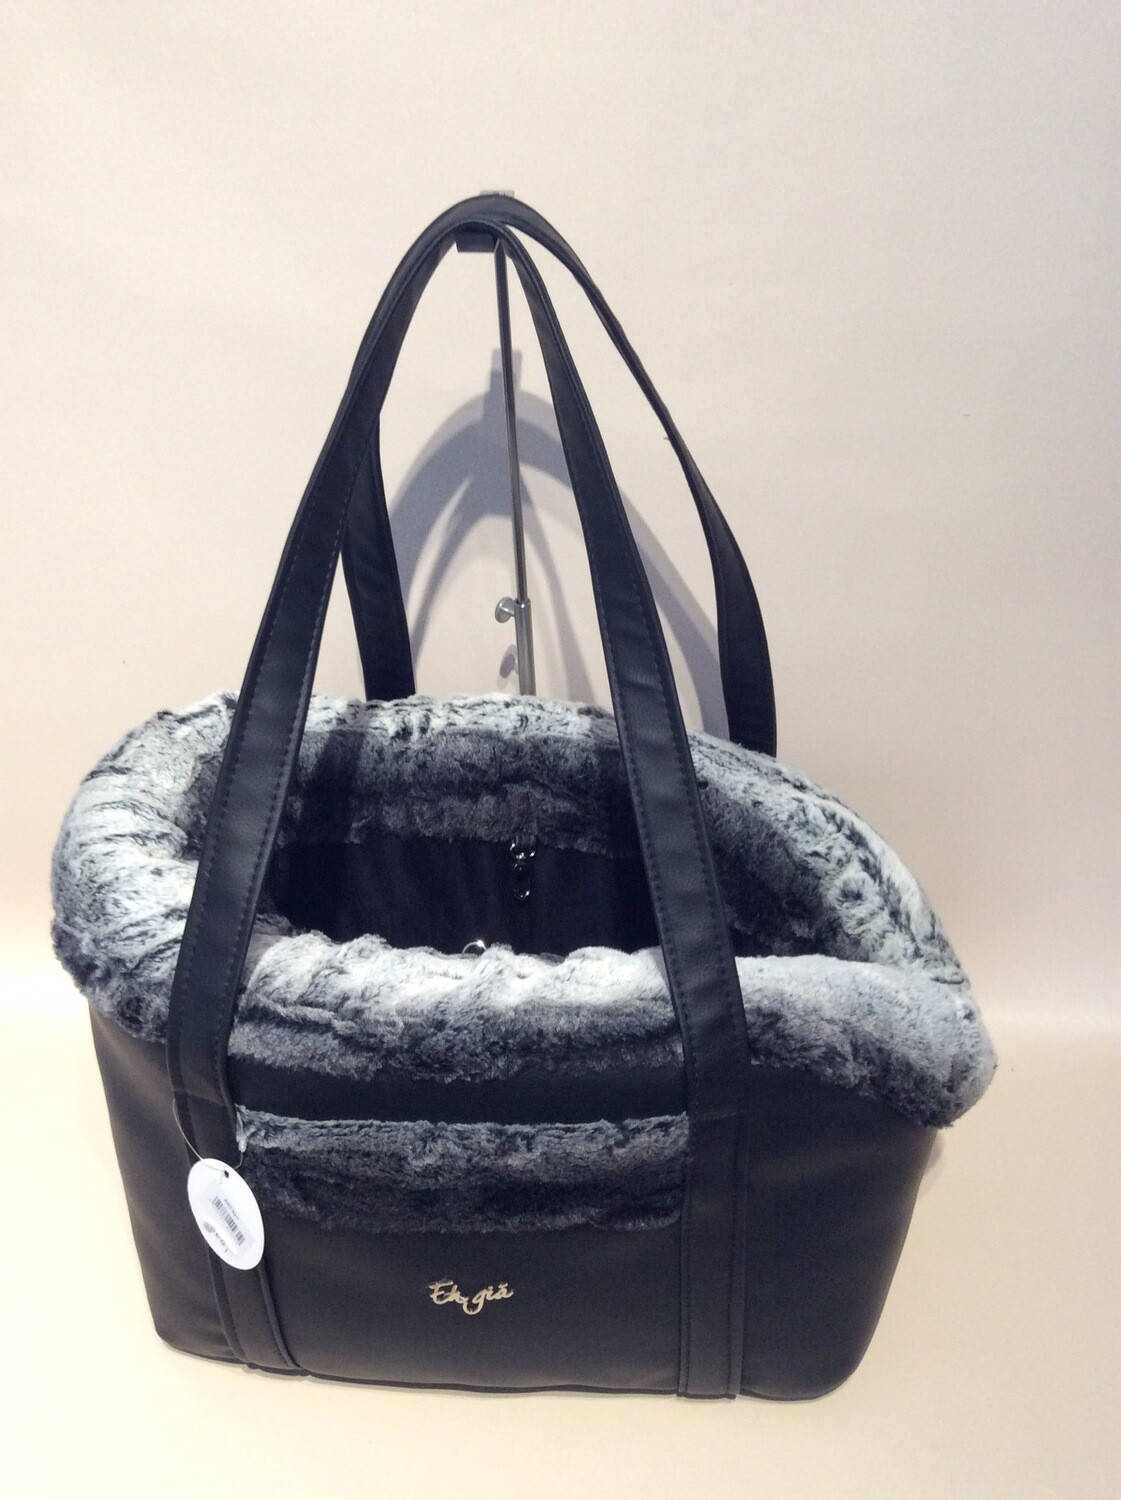 Bag and Bed